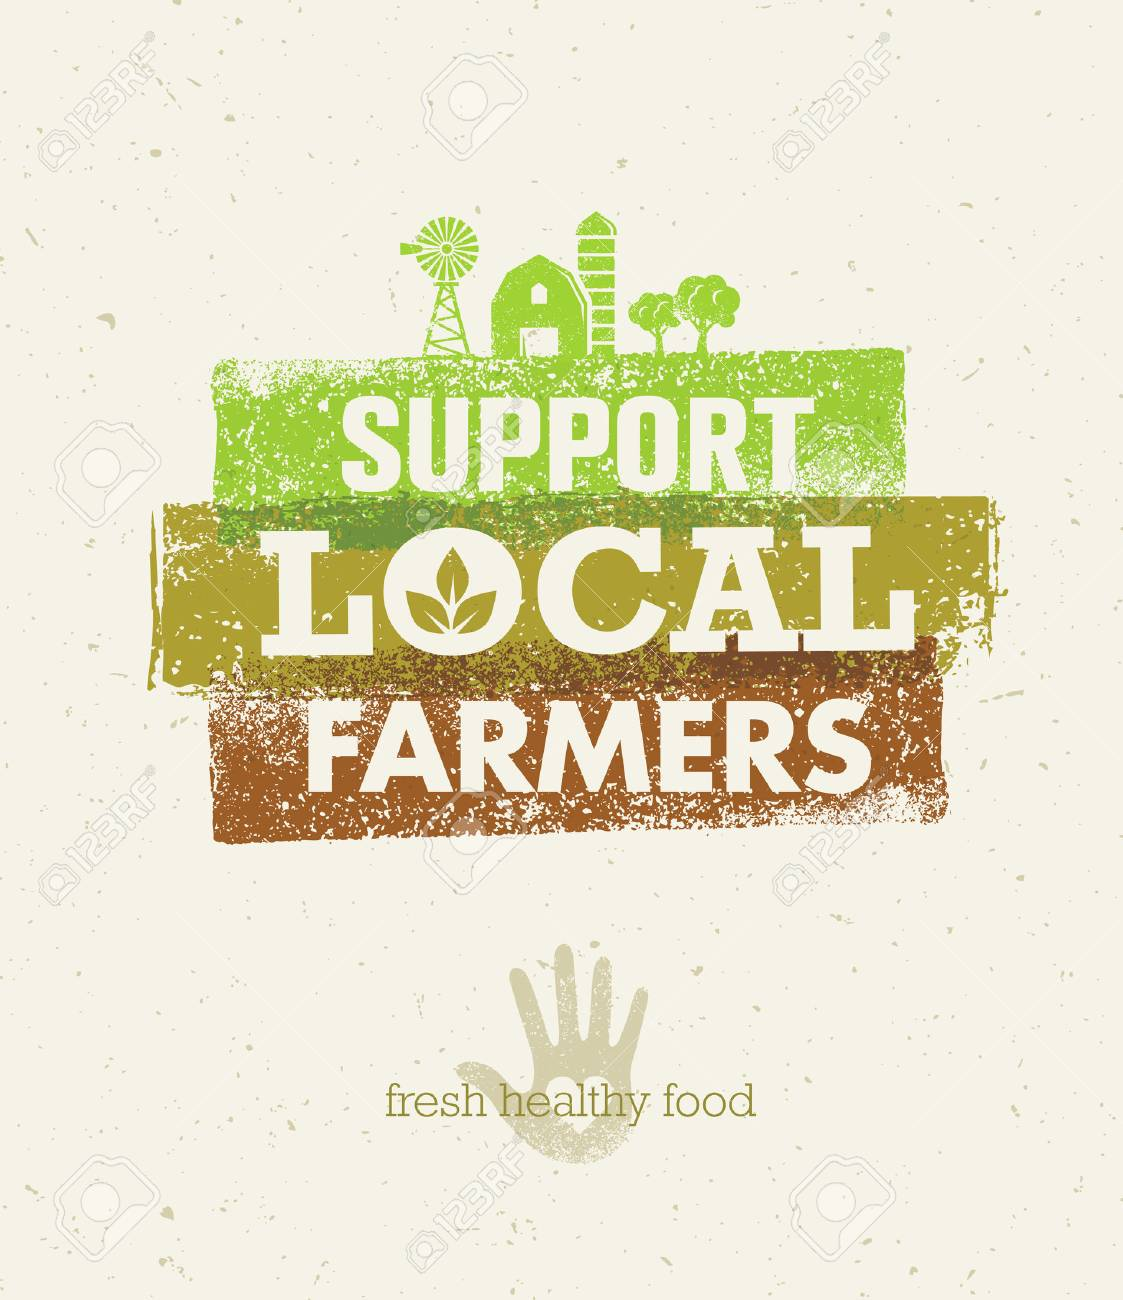 Local Food Market. From Farm To Table Creative Organic Vector Concept on Recycled Paper Background - 72877310